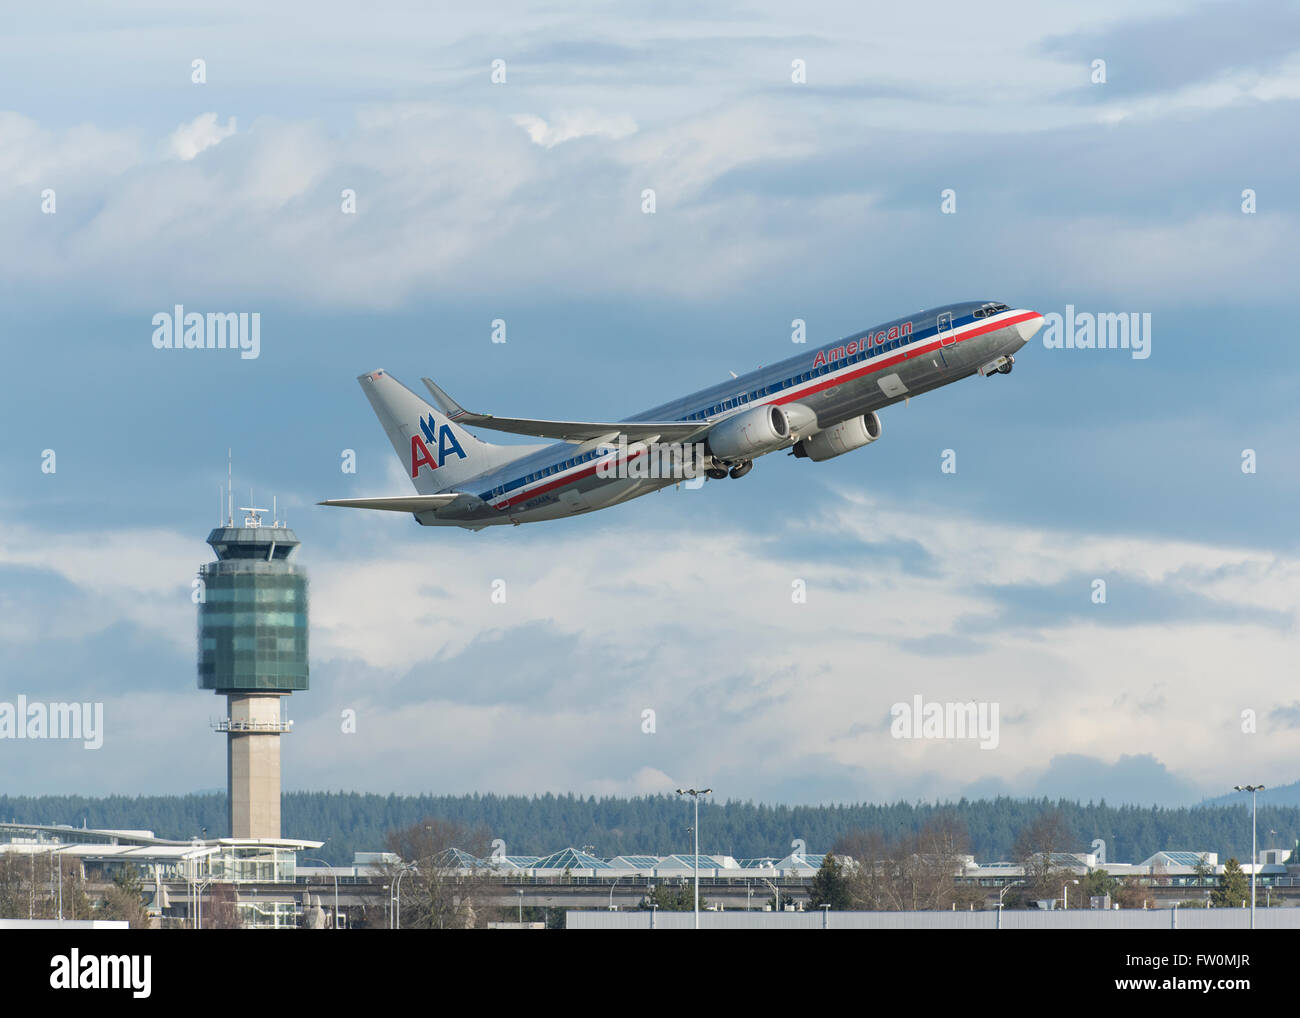 American Airlines Boeing 737-823 taking off from YVR Vancouver International Airport - Stock Image